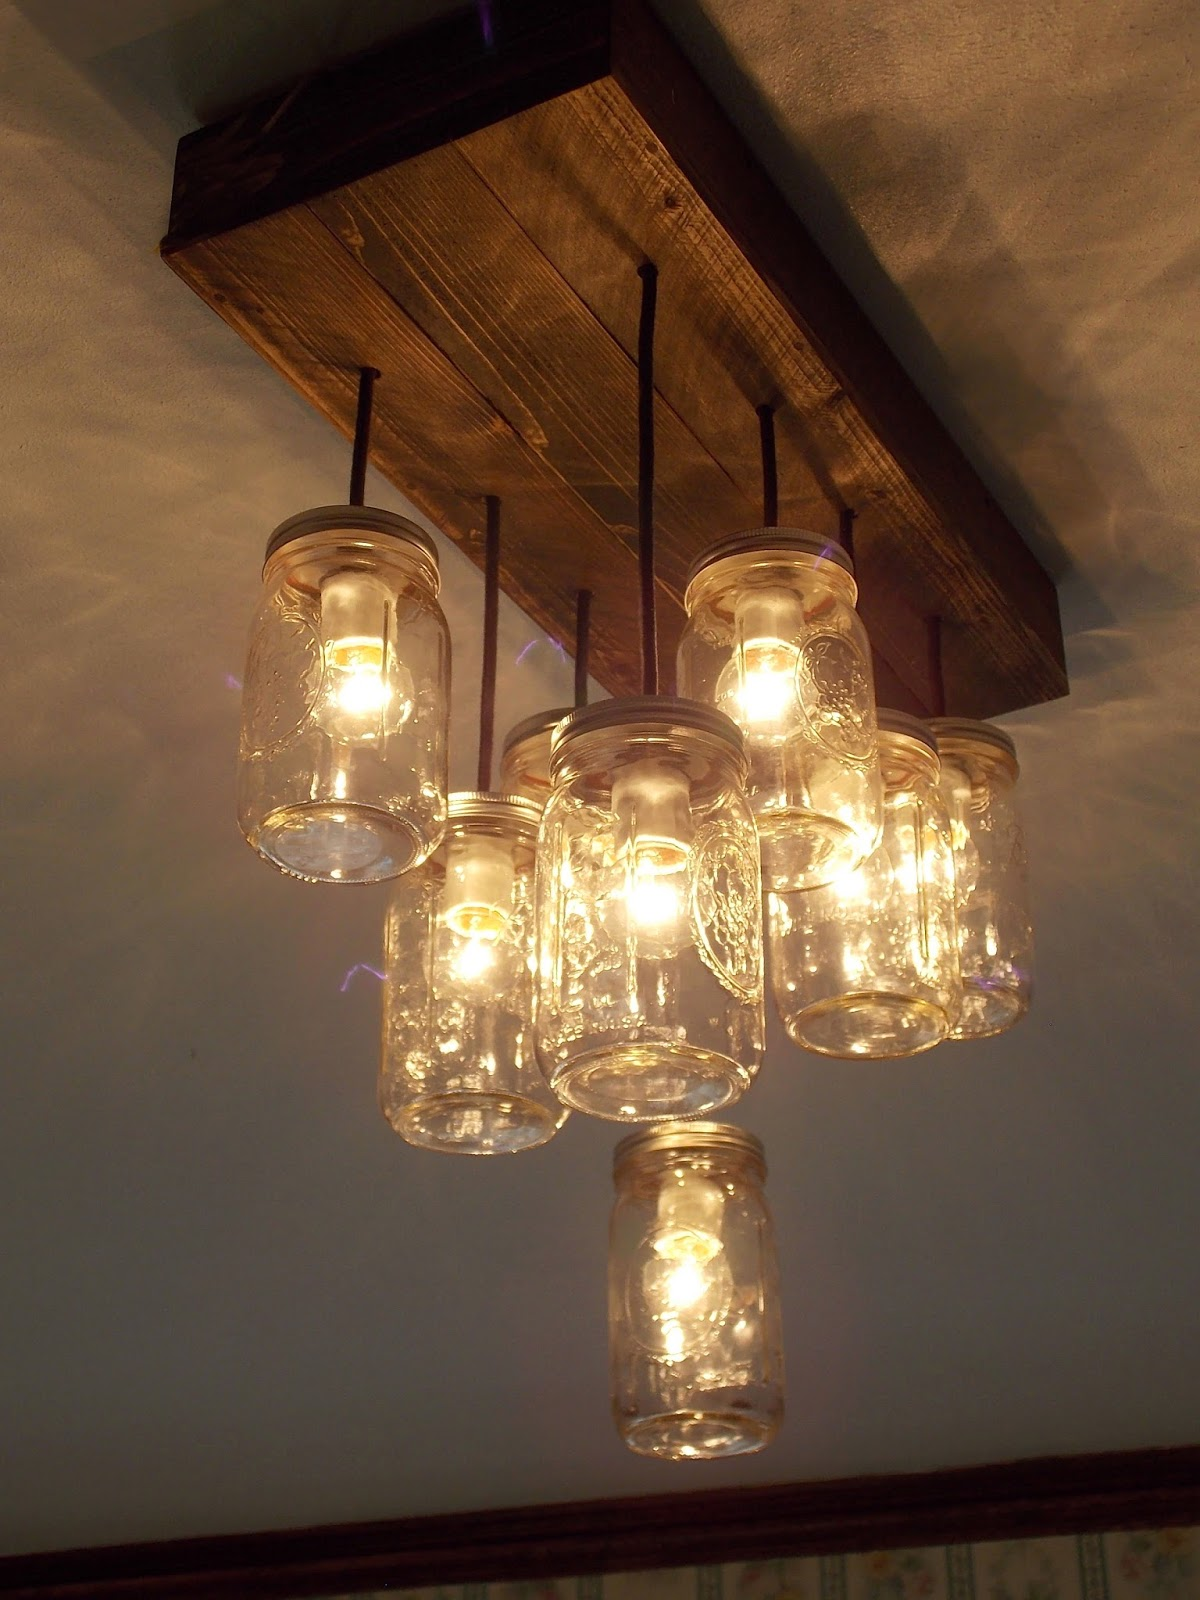 Rubbishlove mason jar chandelier - Light fixtures chandeliers ...